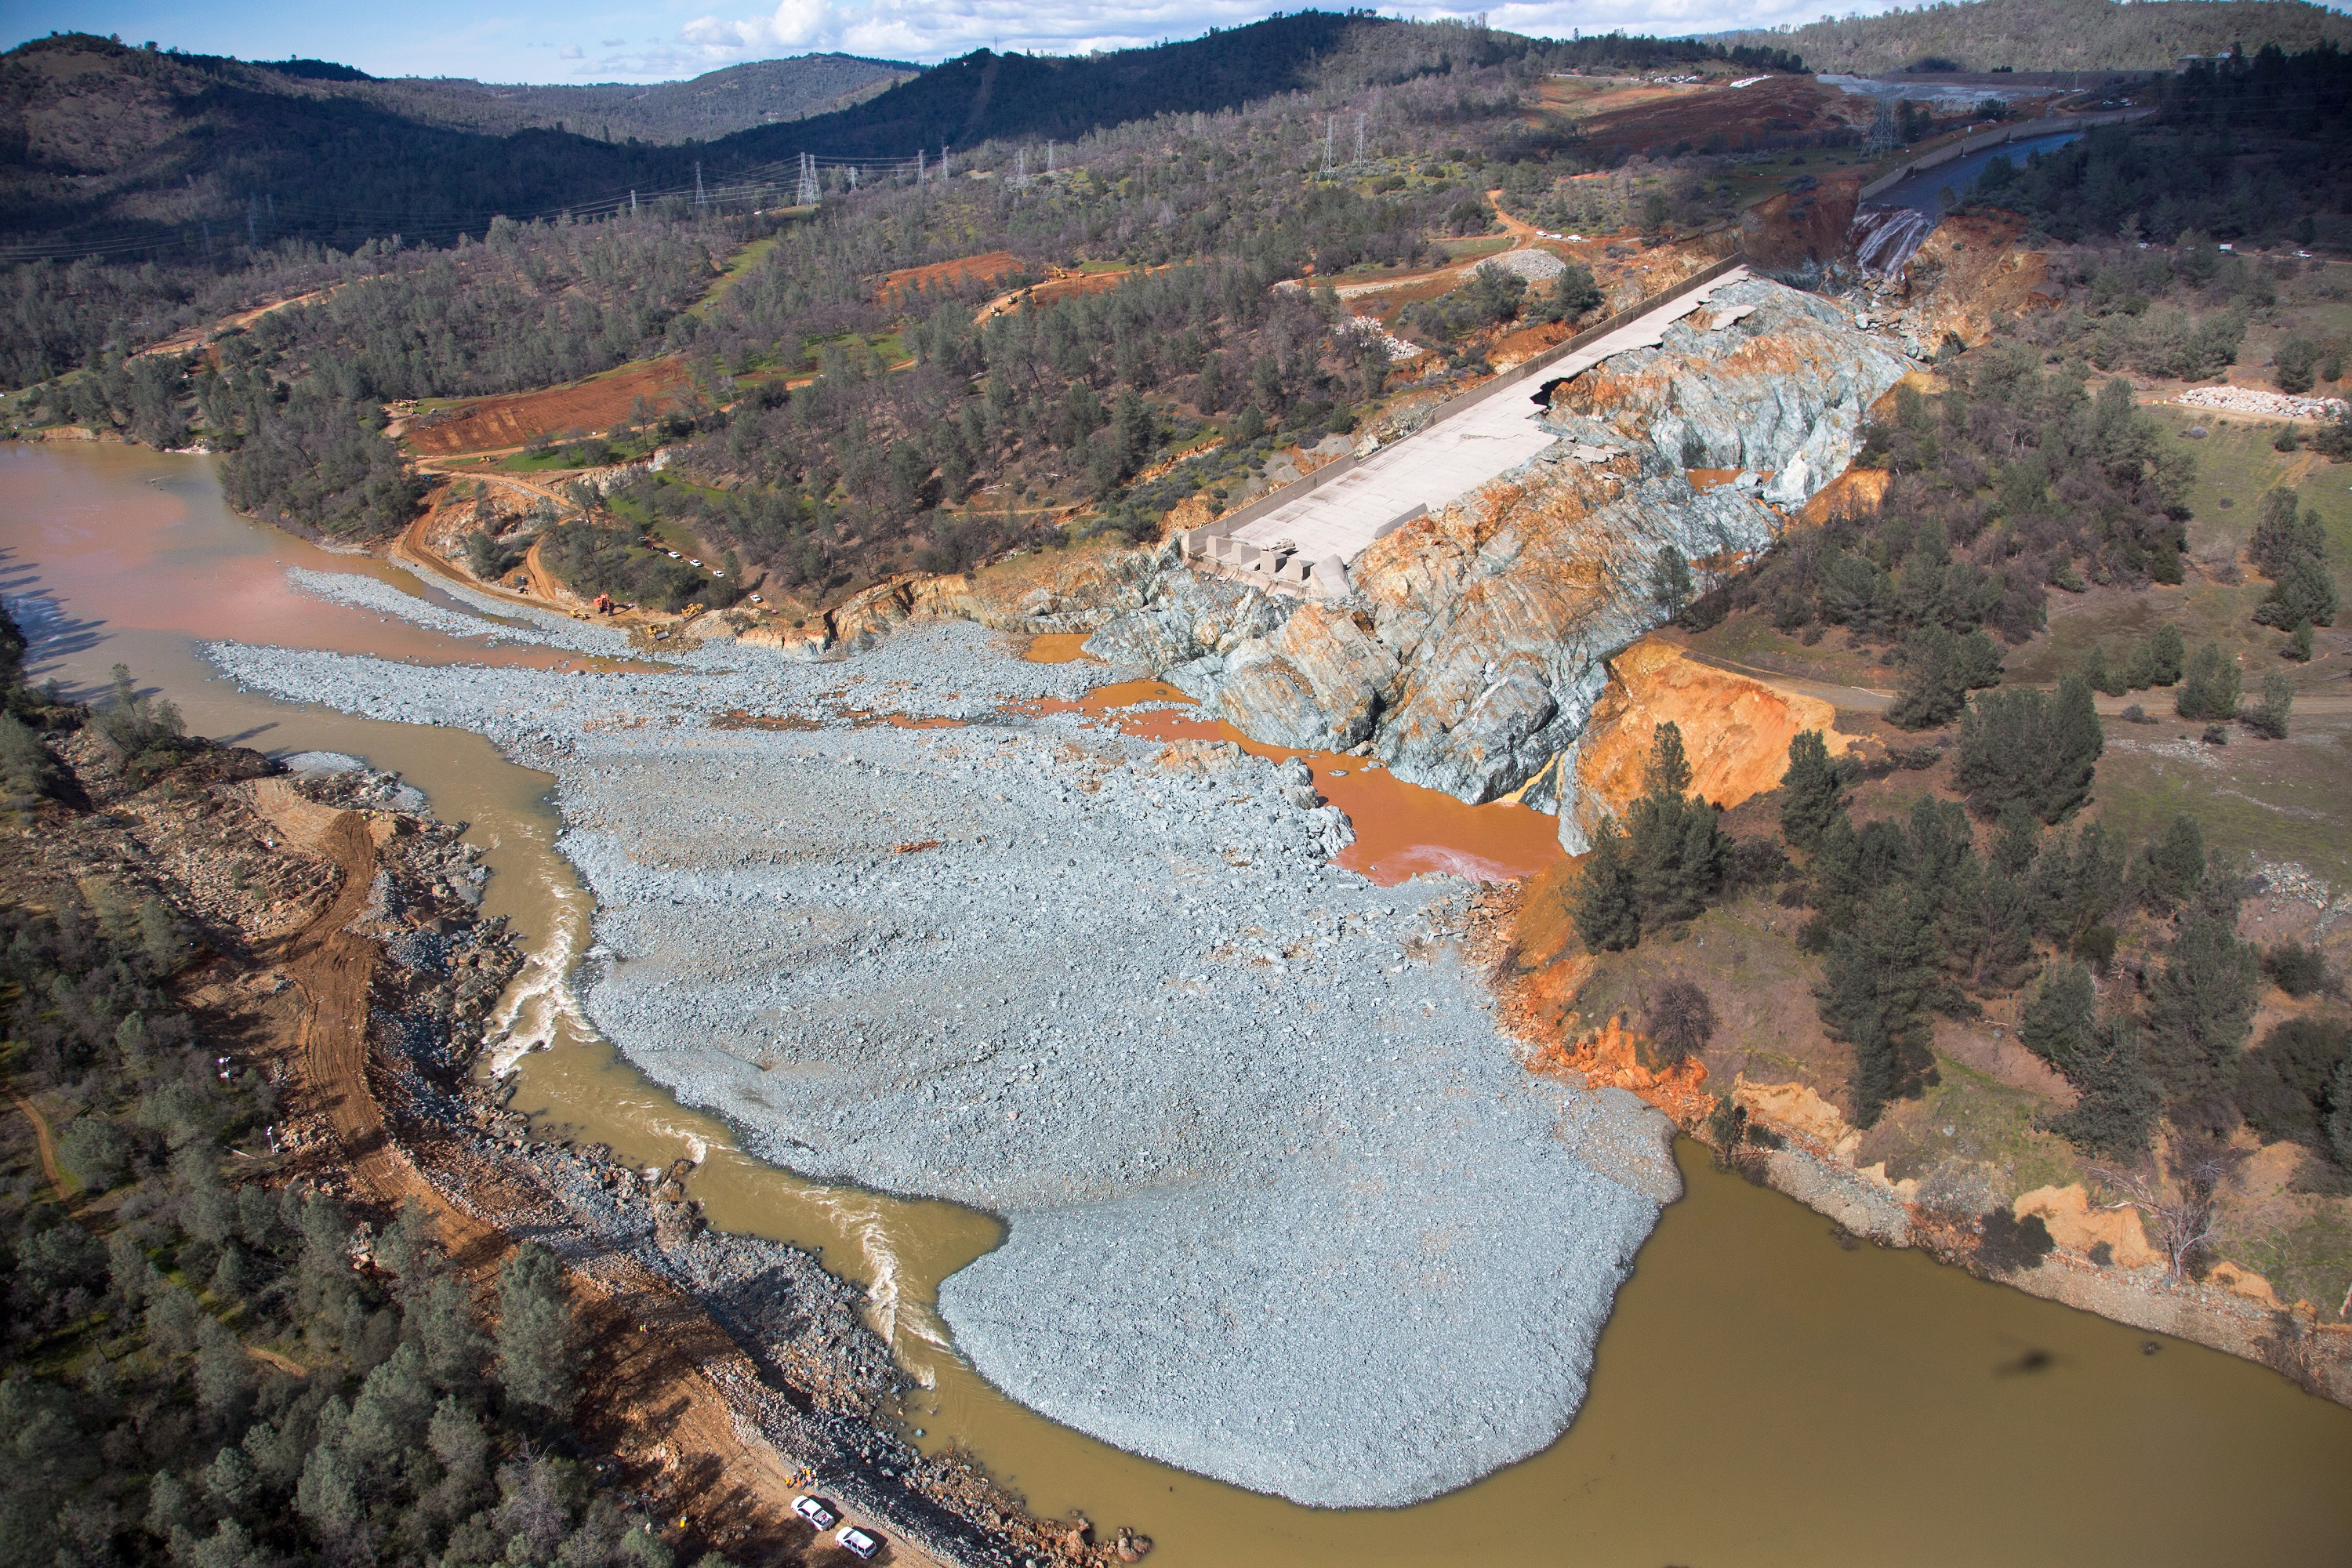 Oroville-aftermath4